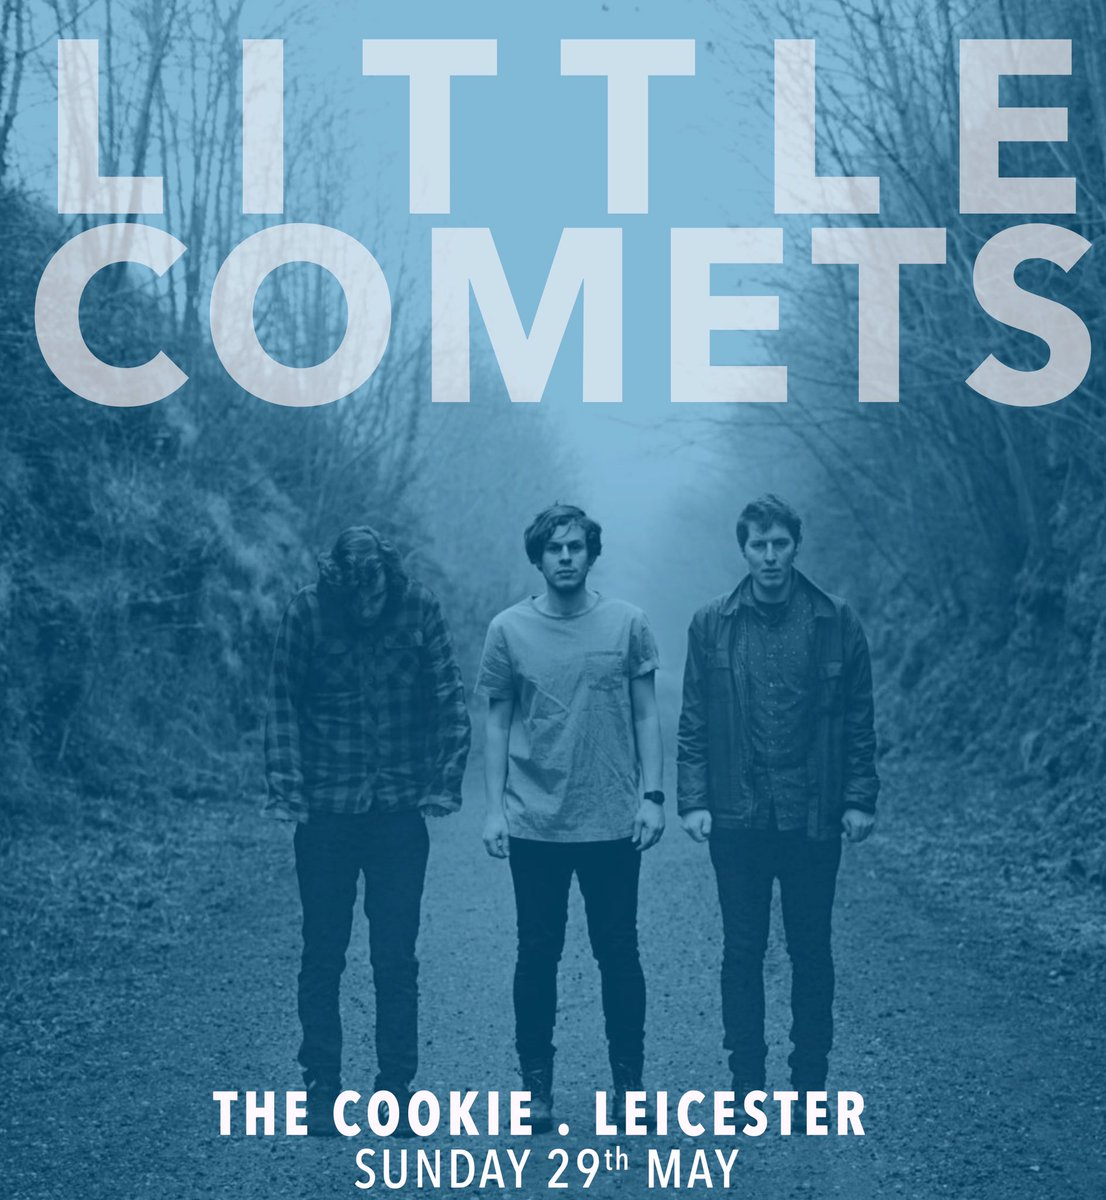 Bank Holiday madness! RT to win a pair of tickets to see @littlecomets on Sunday night. https://t.co/z904GbibOt